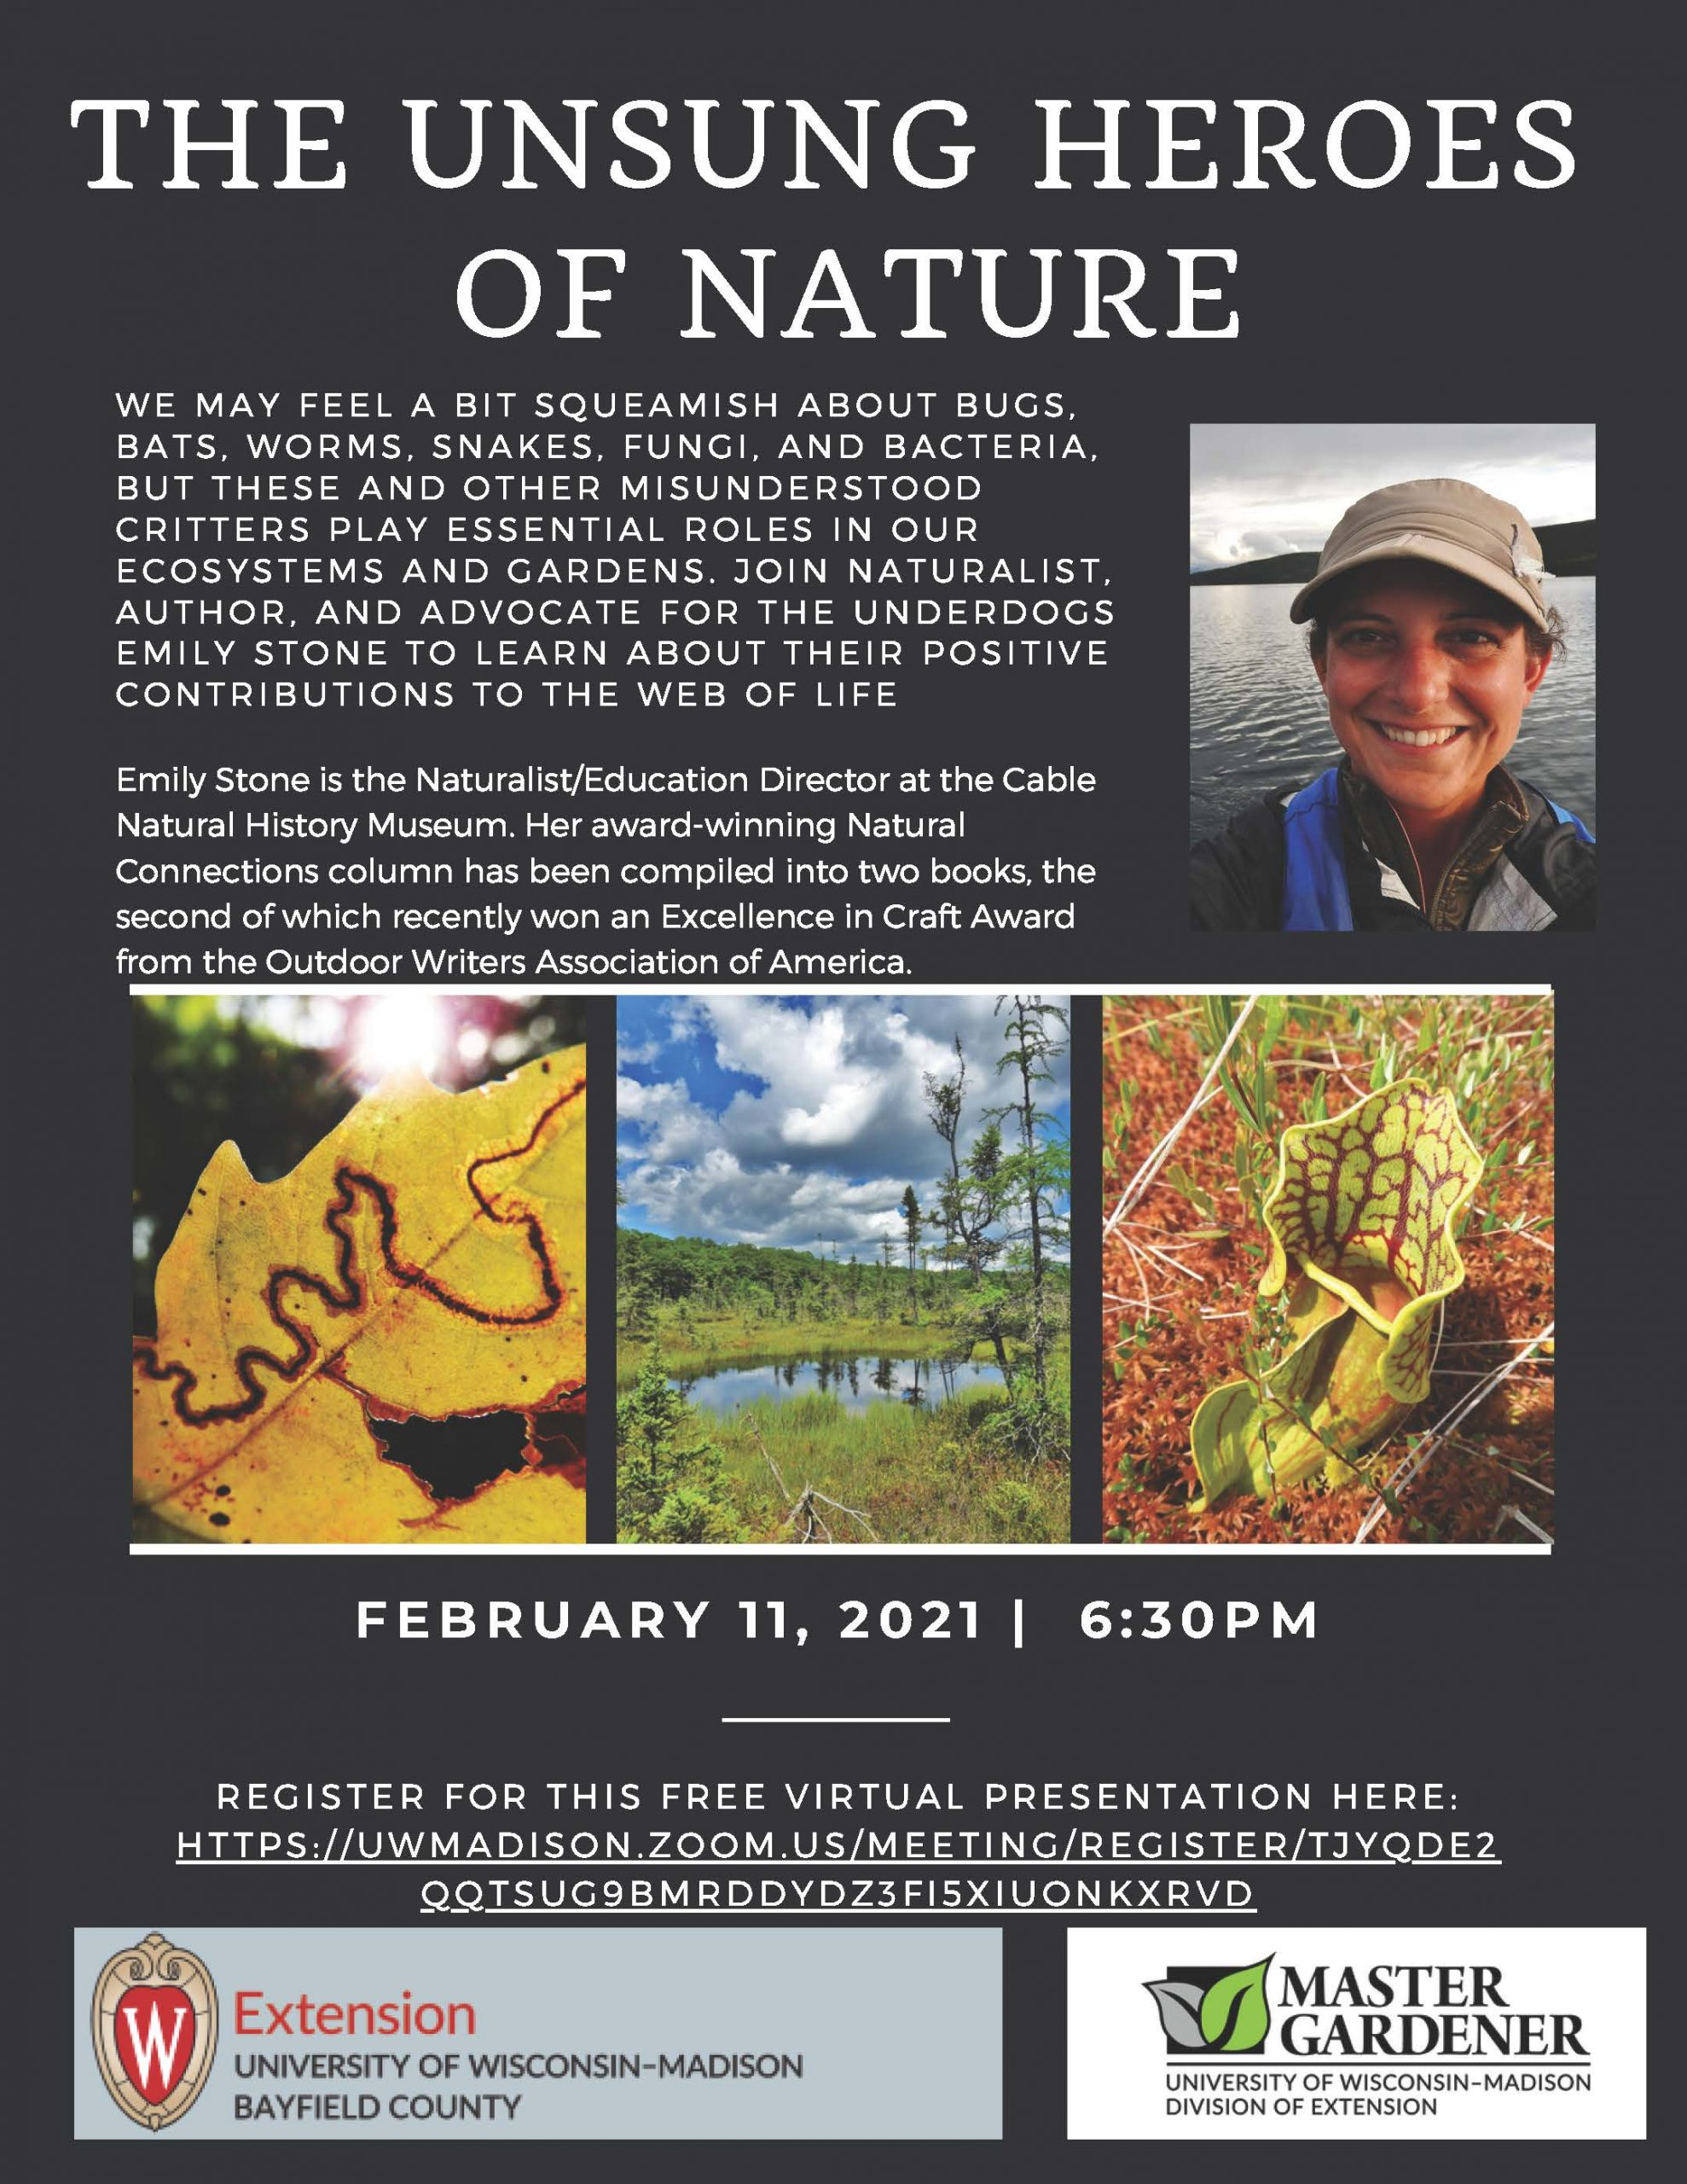 Unsung Heroes of Nature flyer